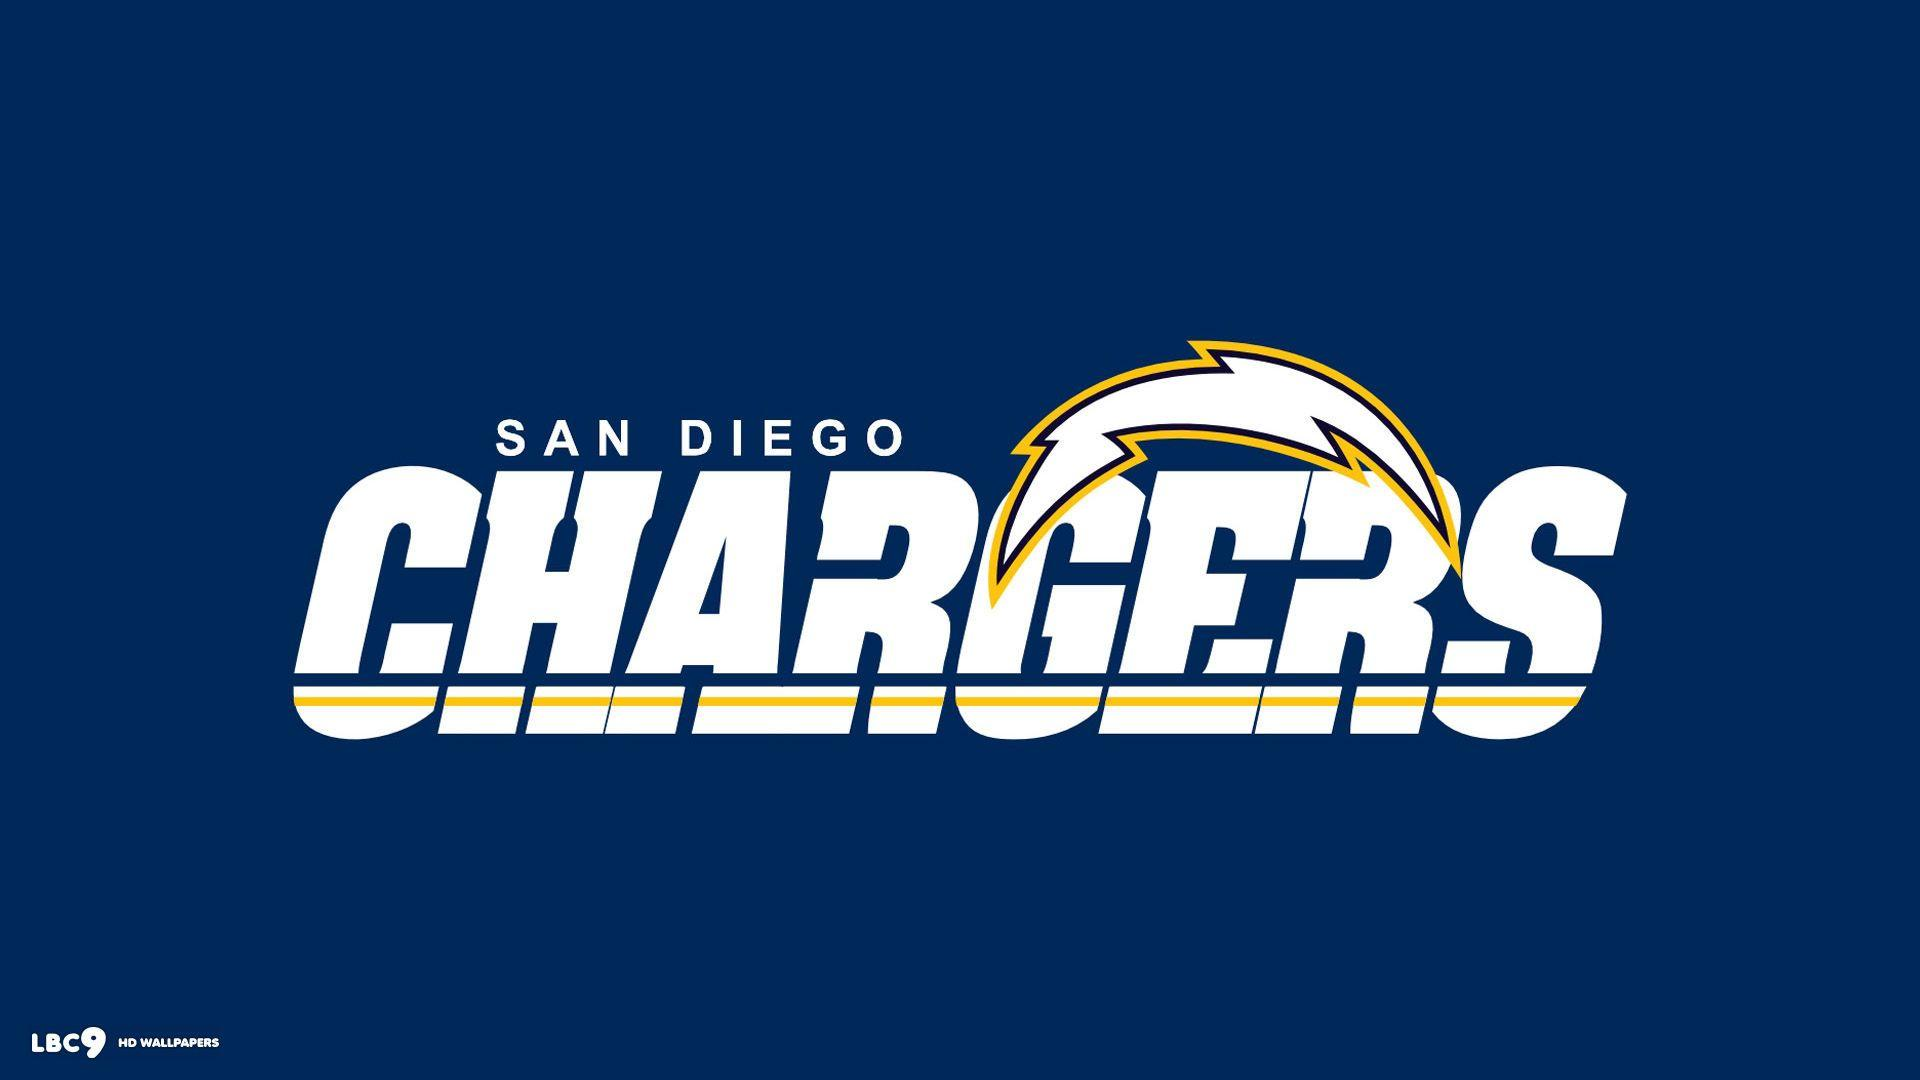 San diego chargers wallpapers wallpaper cave 11 san diego chargers wallpapers hdwallpapersfast voltagebd Images